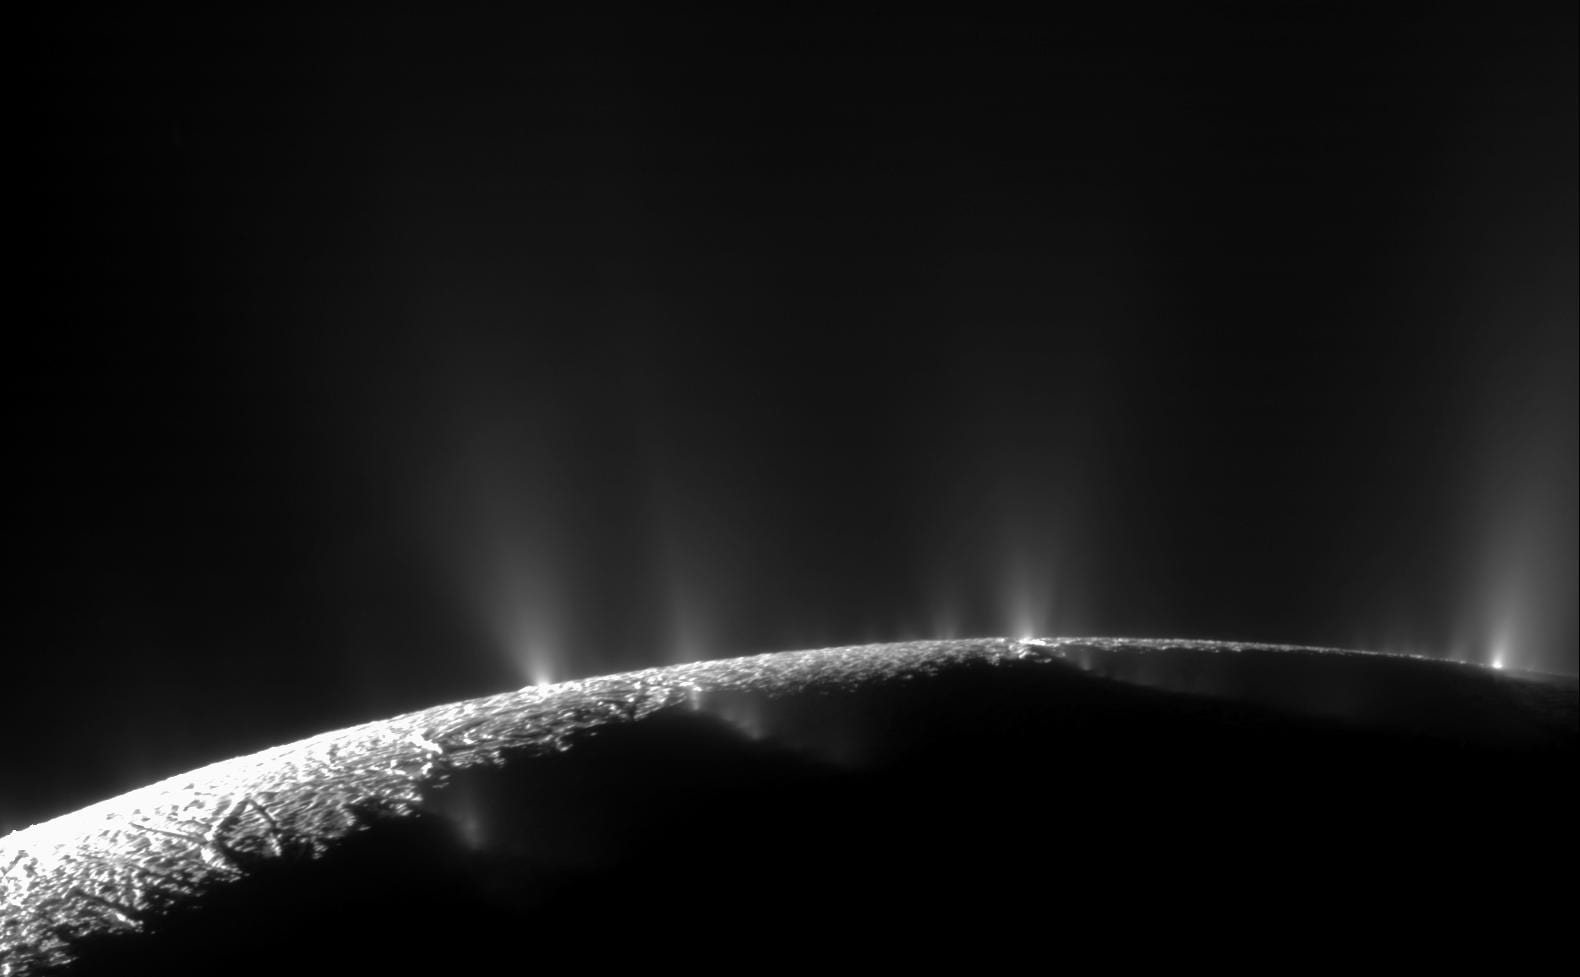 A small section of a darkly lit moon with bright jets of water shooting out from the surface against the blackness of space.